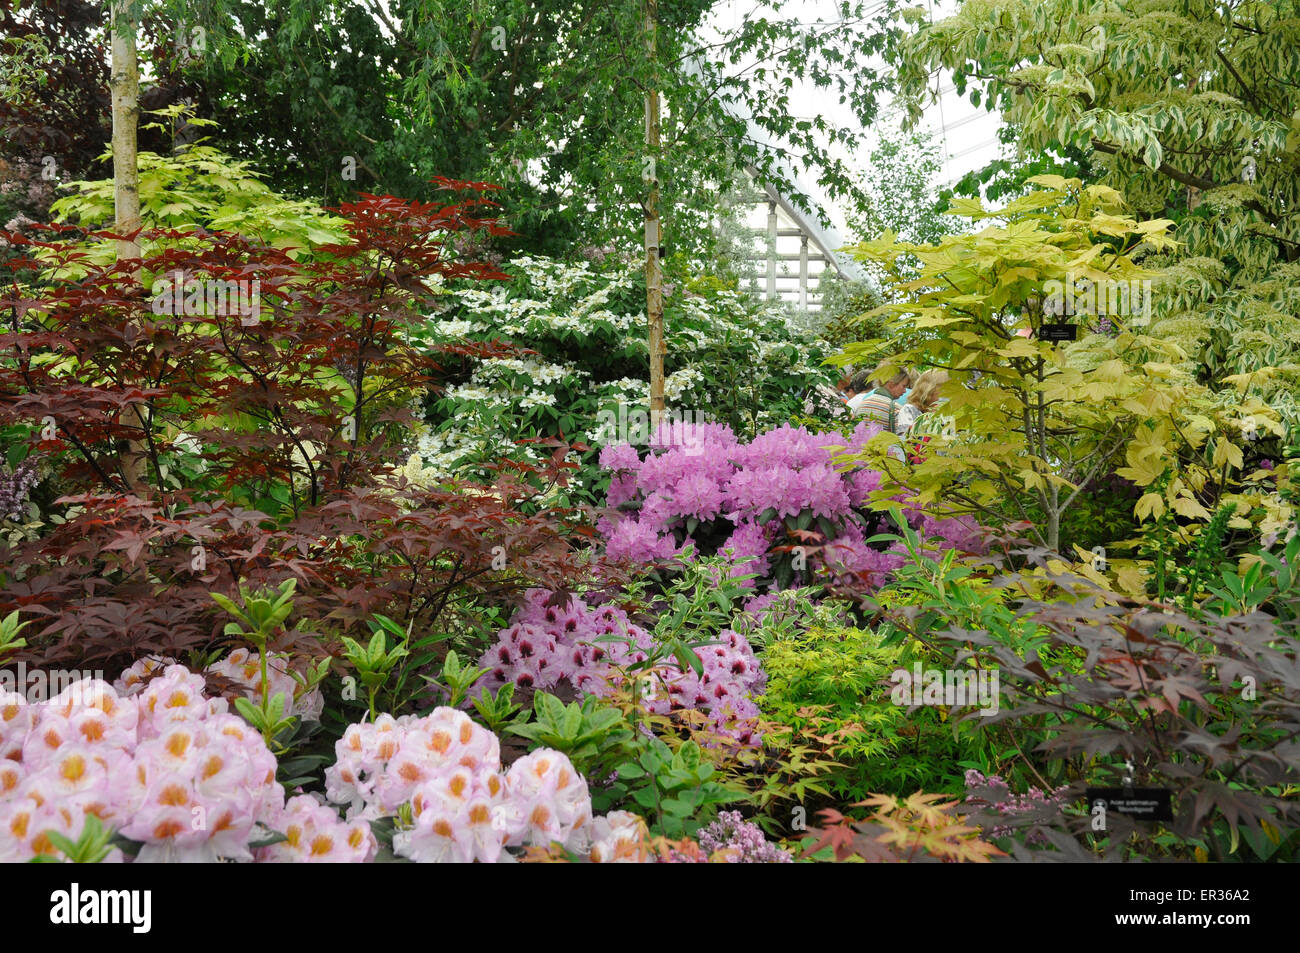 RHS Chelsea Flower Show 2015 - Hillier Nursery display of Woodland Trees and Shrubs, including Rhododendrons and Stock Photo